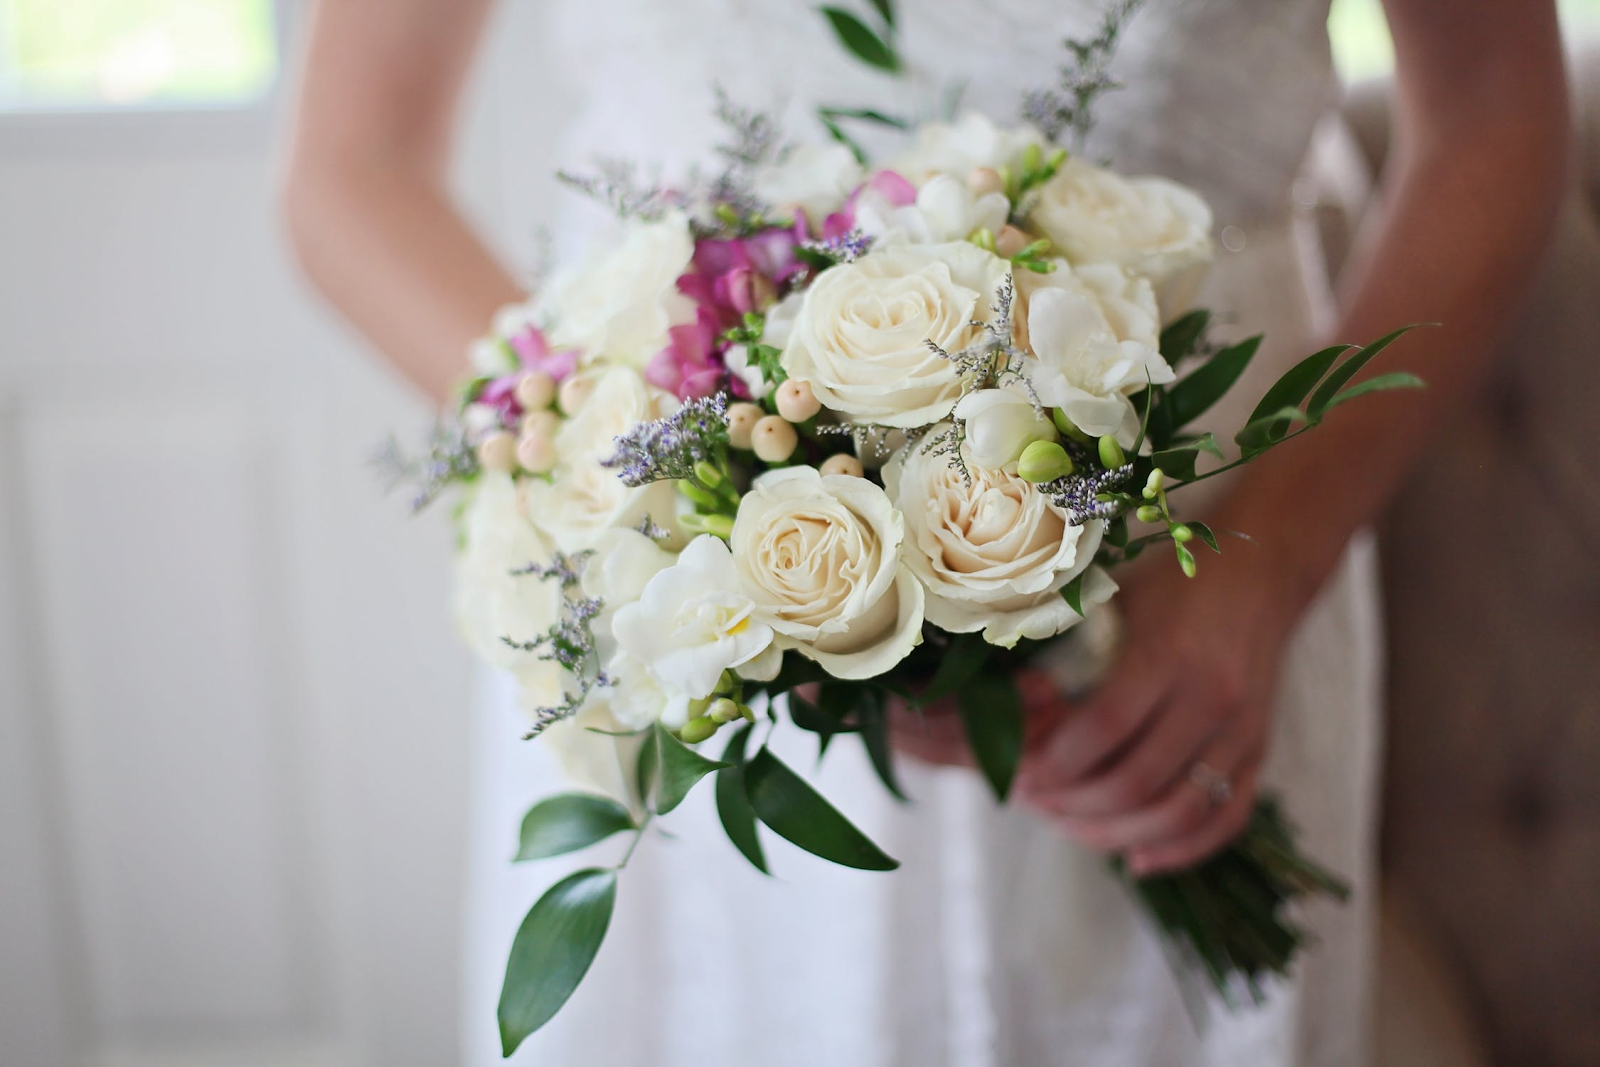 Squeezing More From Your Wedding Budget